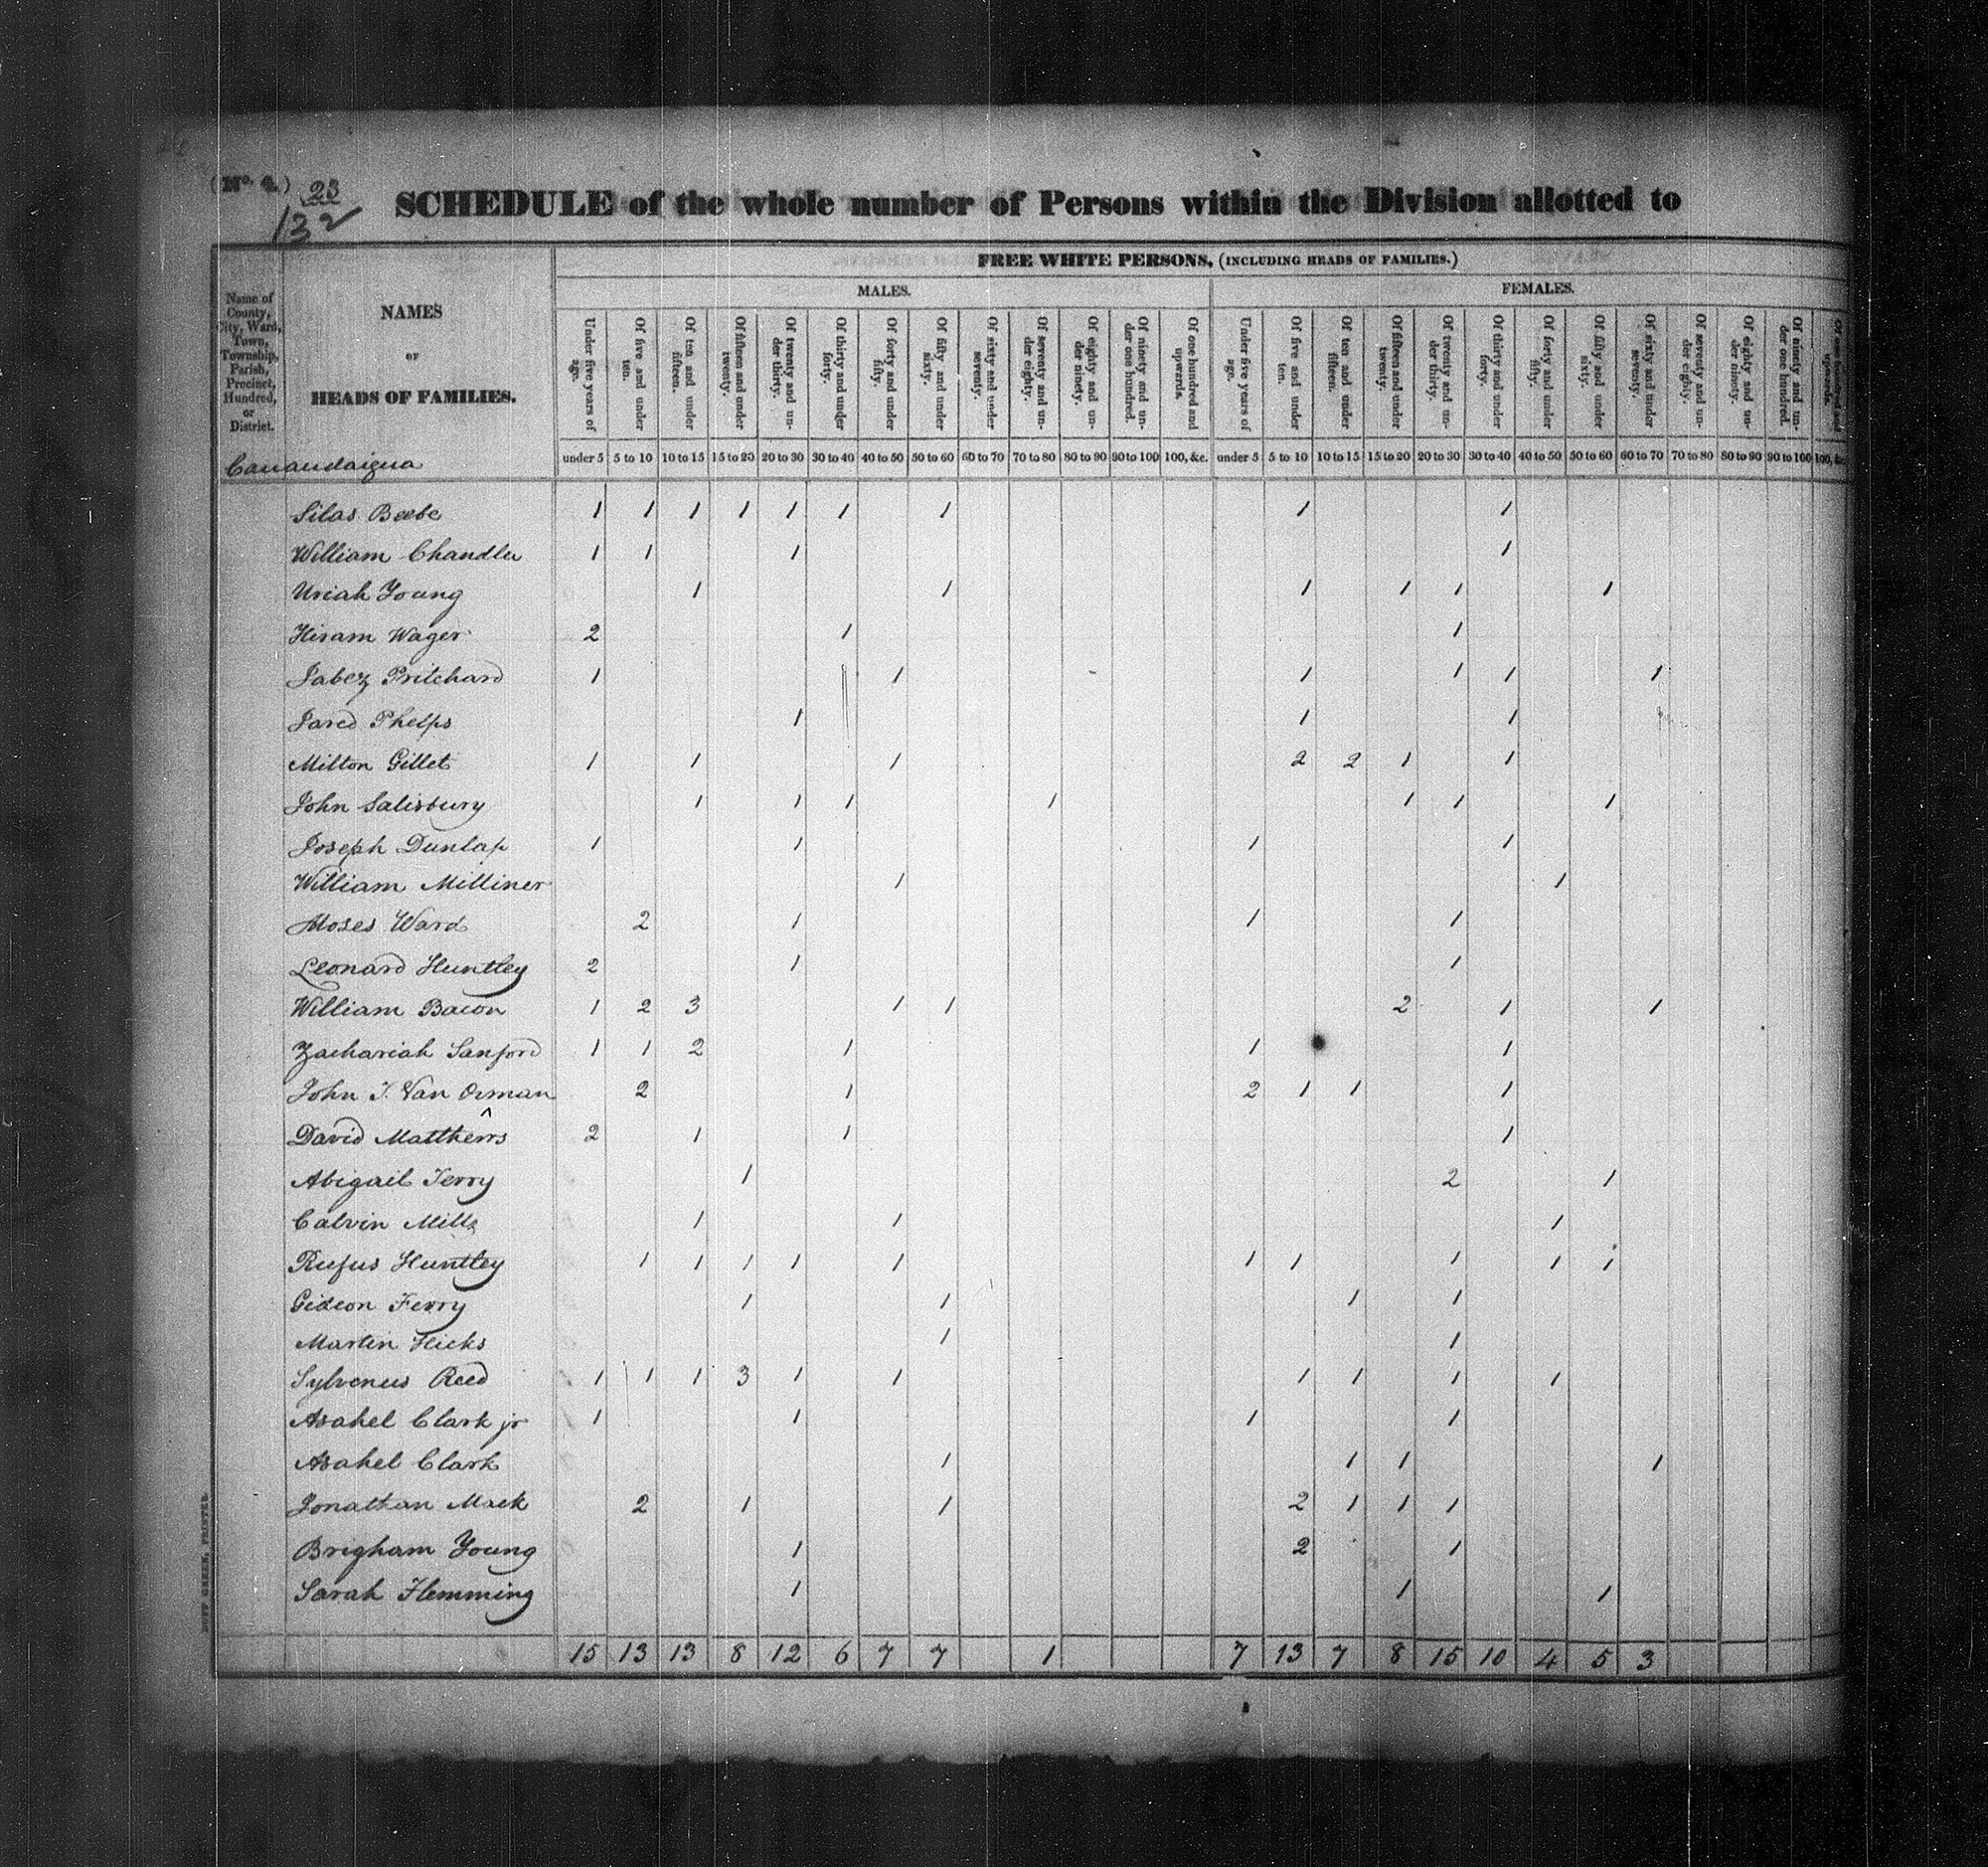 Brigham Young Listed In New York In The 1830 Census